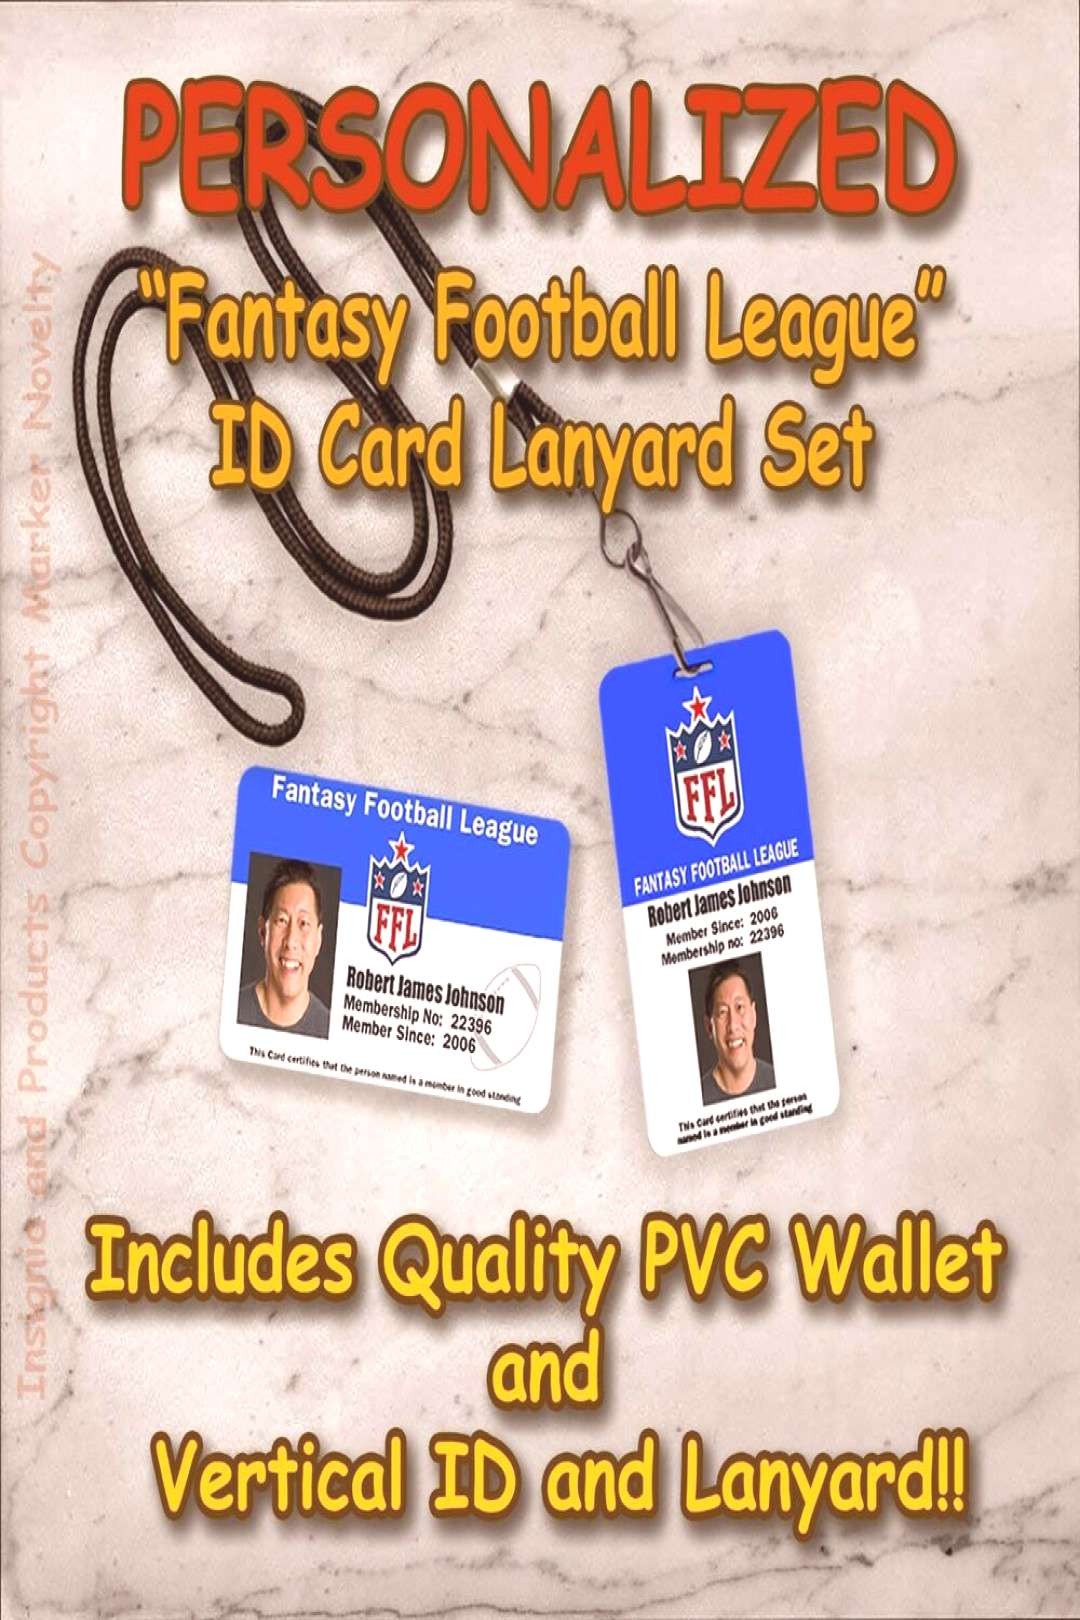 Personalized Fantasy Football League Quality PVC Photo IDs and Lanyard Set NFL